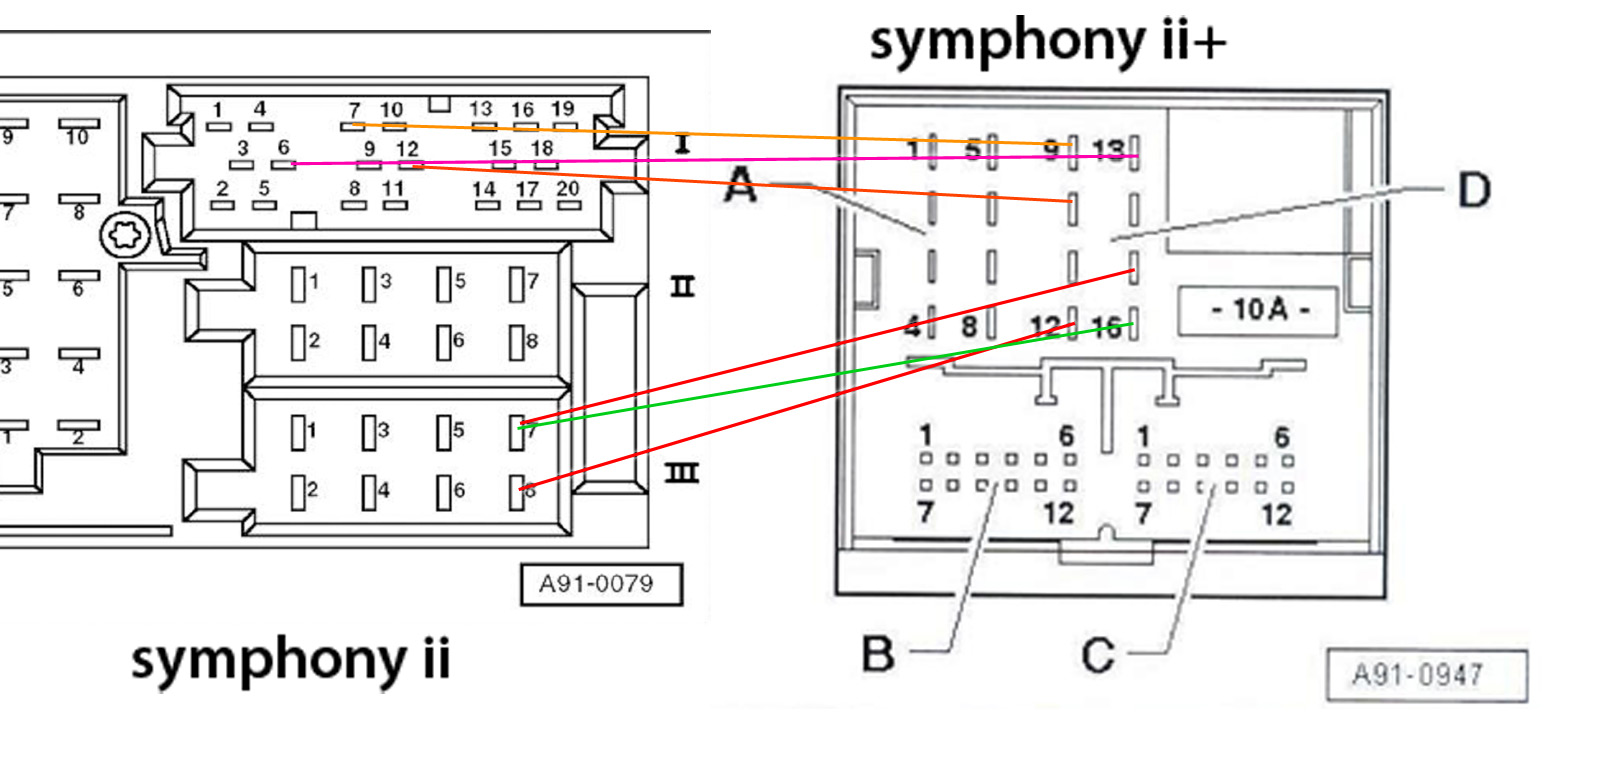 Symphony Ii Won't Power Up Audiworld Forums Audi Symphony Wire Diagram Audi  Symphony Wire Diagram